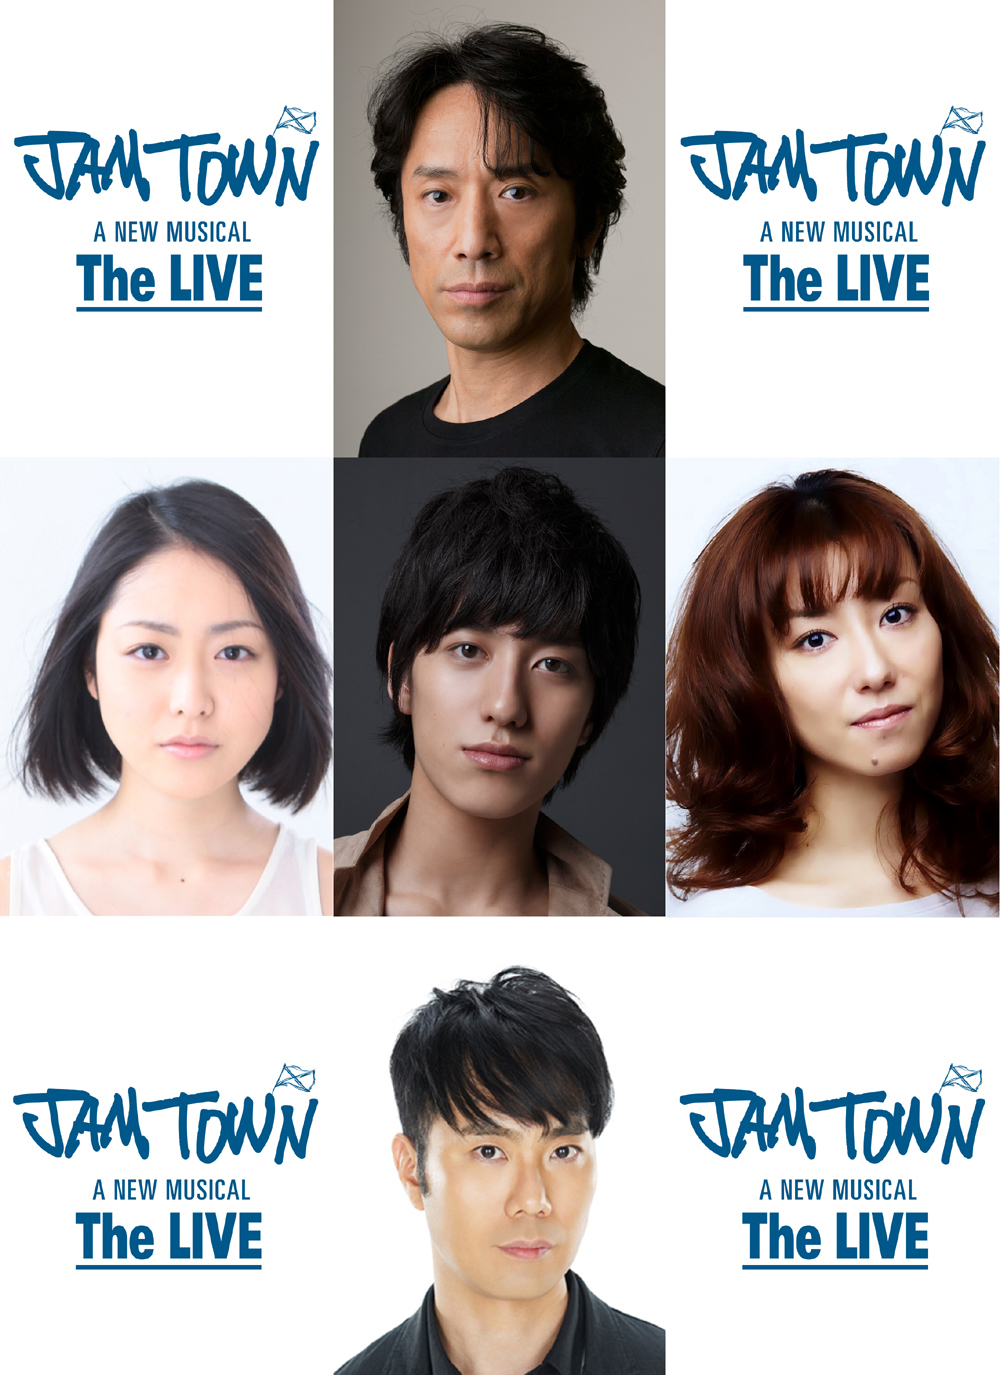 A NEW MUSICAL「JAM TOWN」The LIVE